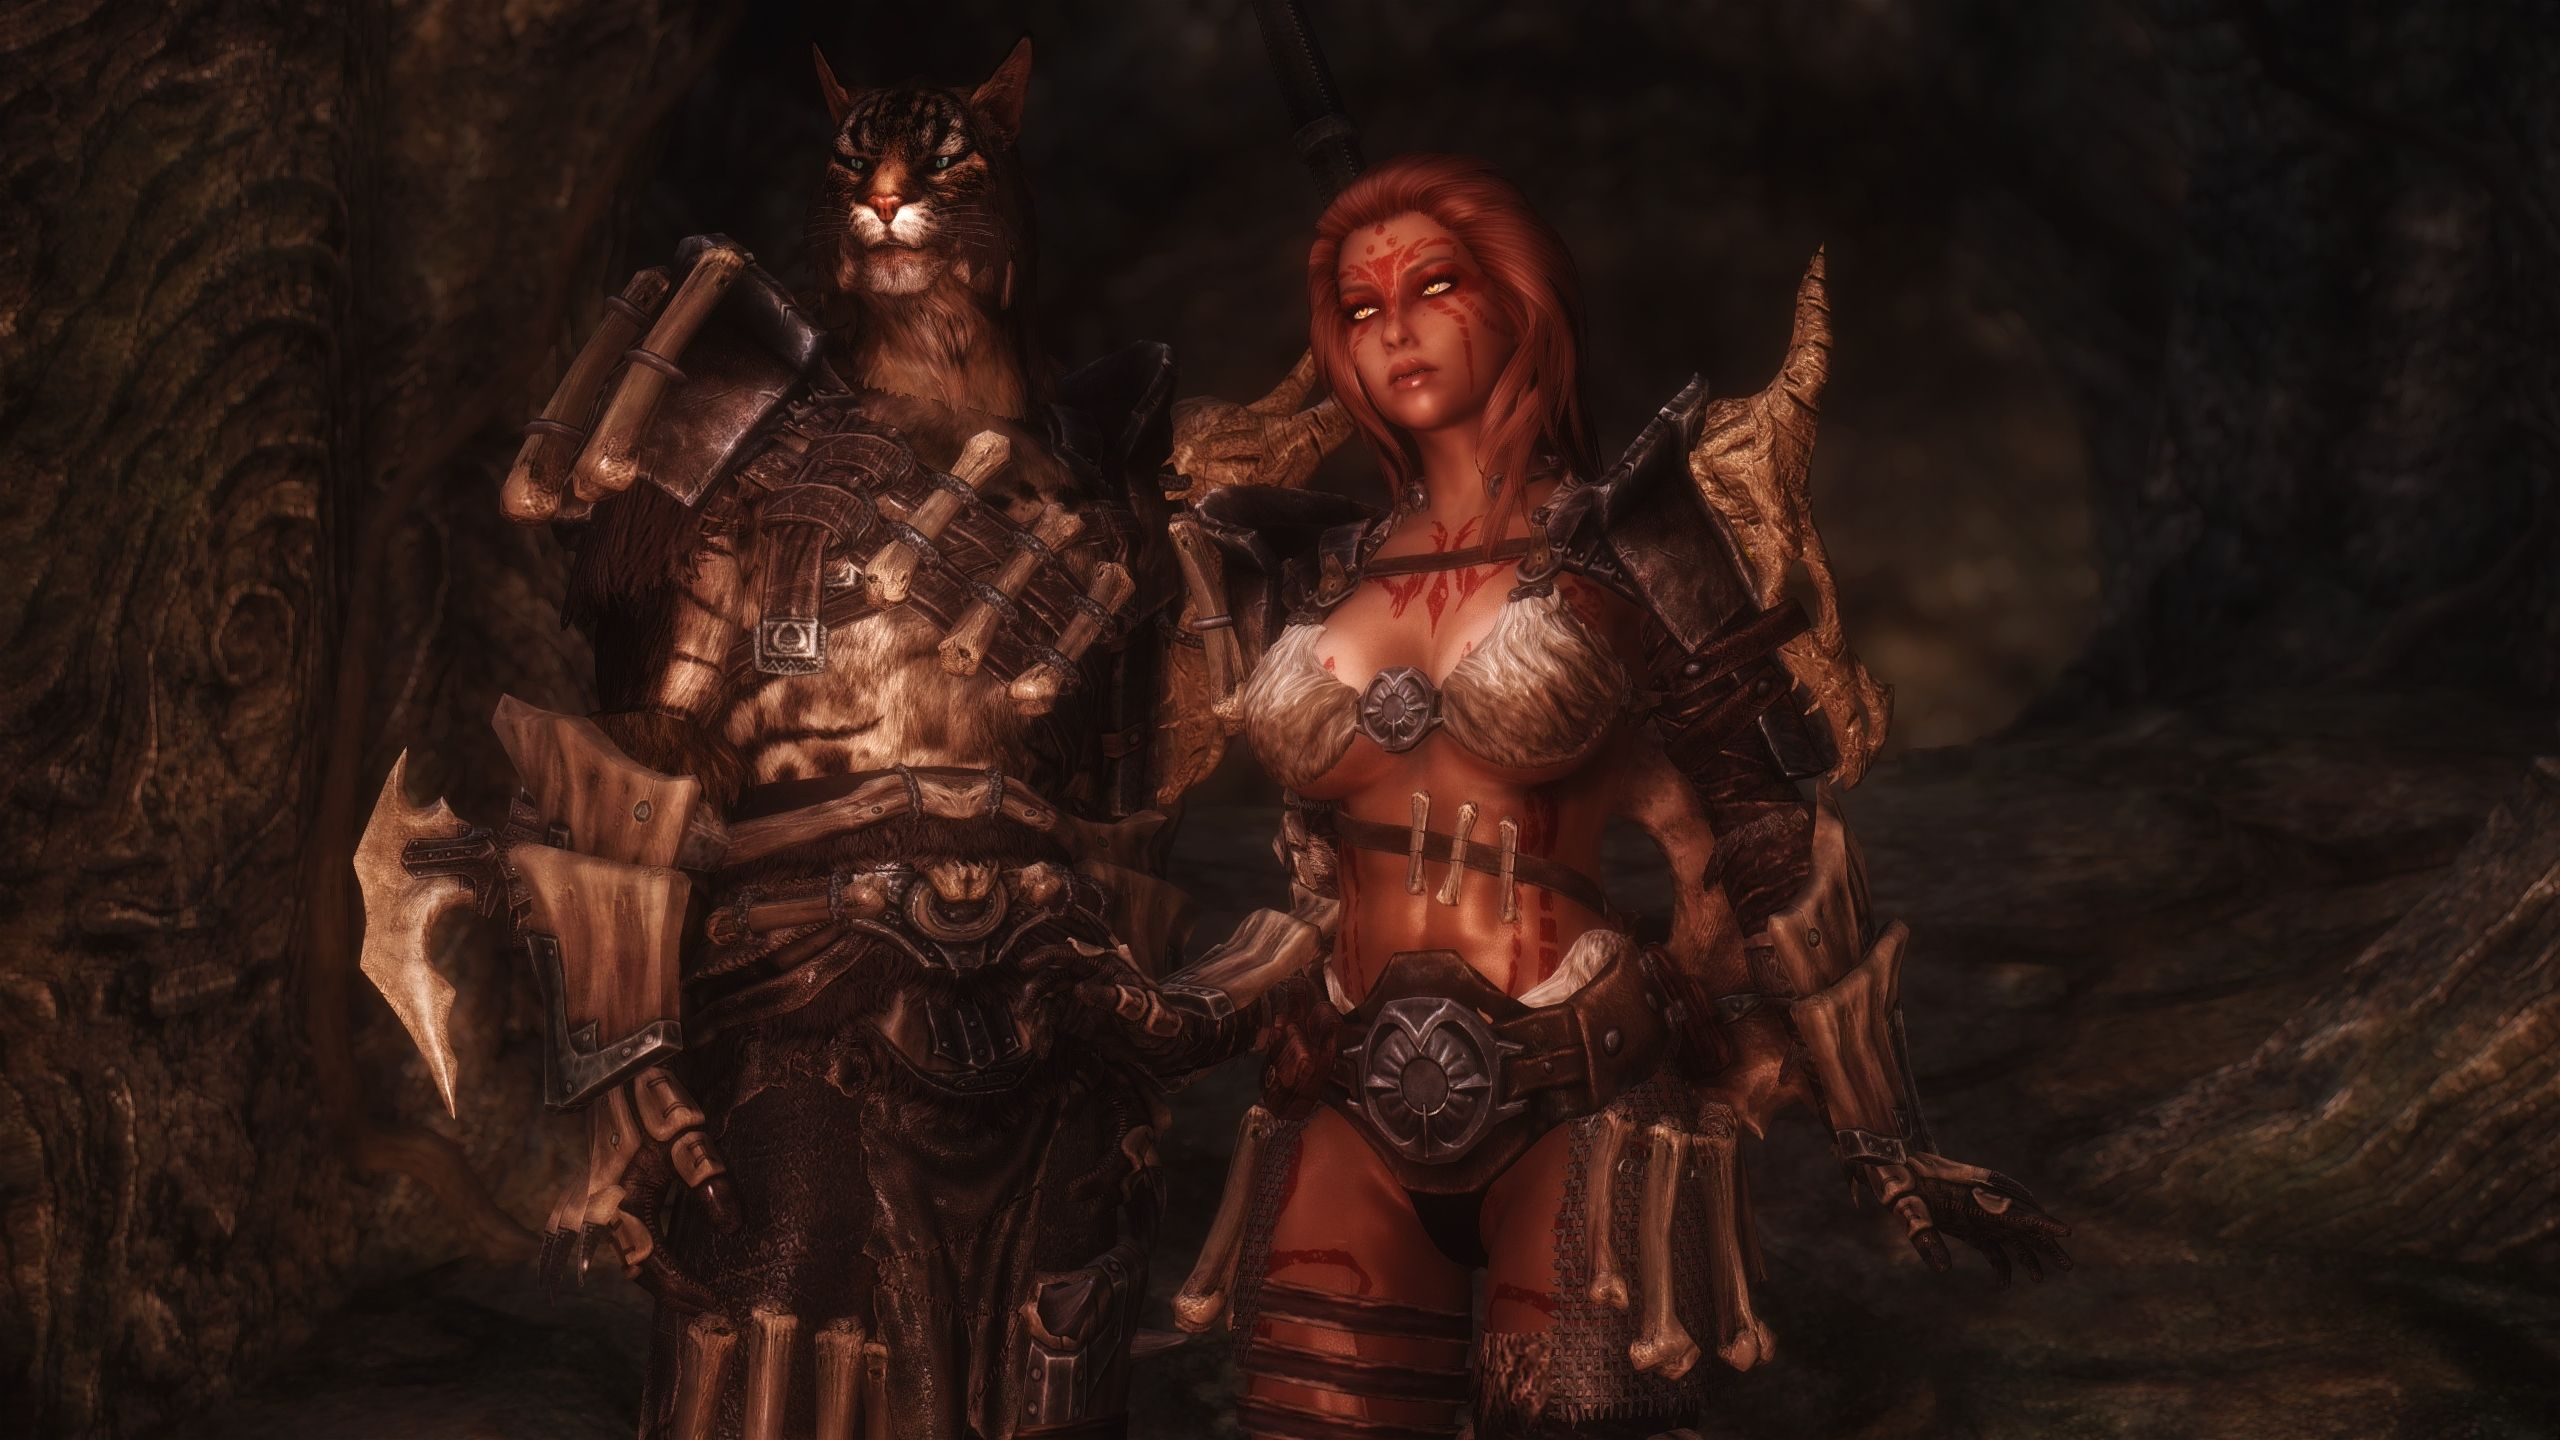 Dragonbone Barbarian Armors At Skyrim Special Edition Nexus Mods And Community Barbarian Armor Skyrim Tes Skyrim This costume here openly displays it does not try to. dragonbone barbarian armors at skyrim